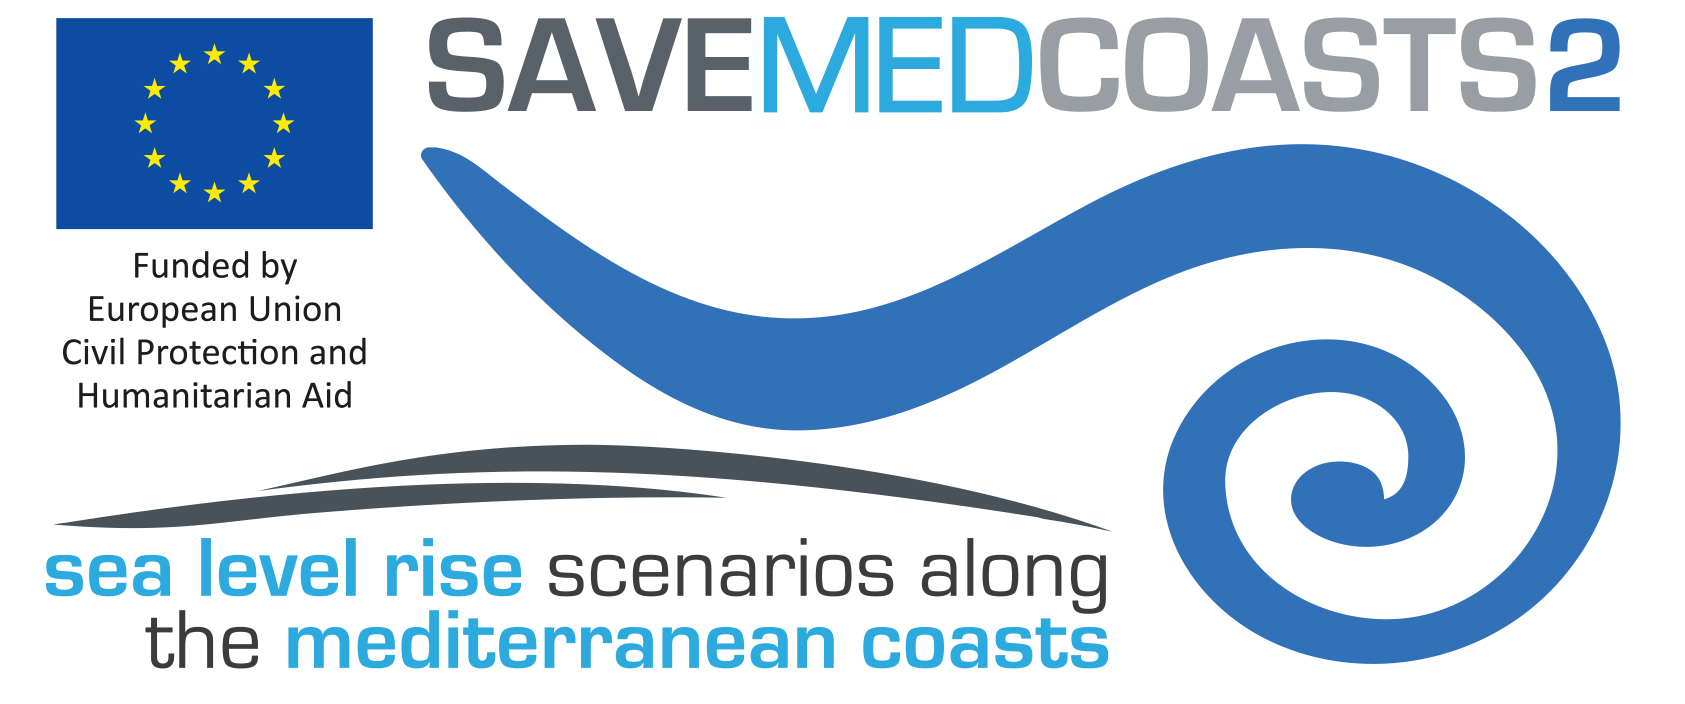 The INGV website announces the SAVEMEDCOASTS 2 project: